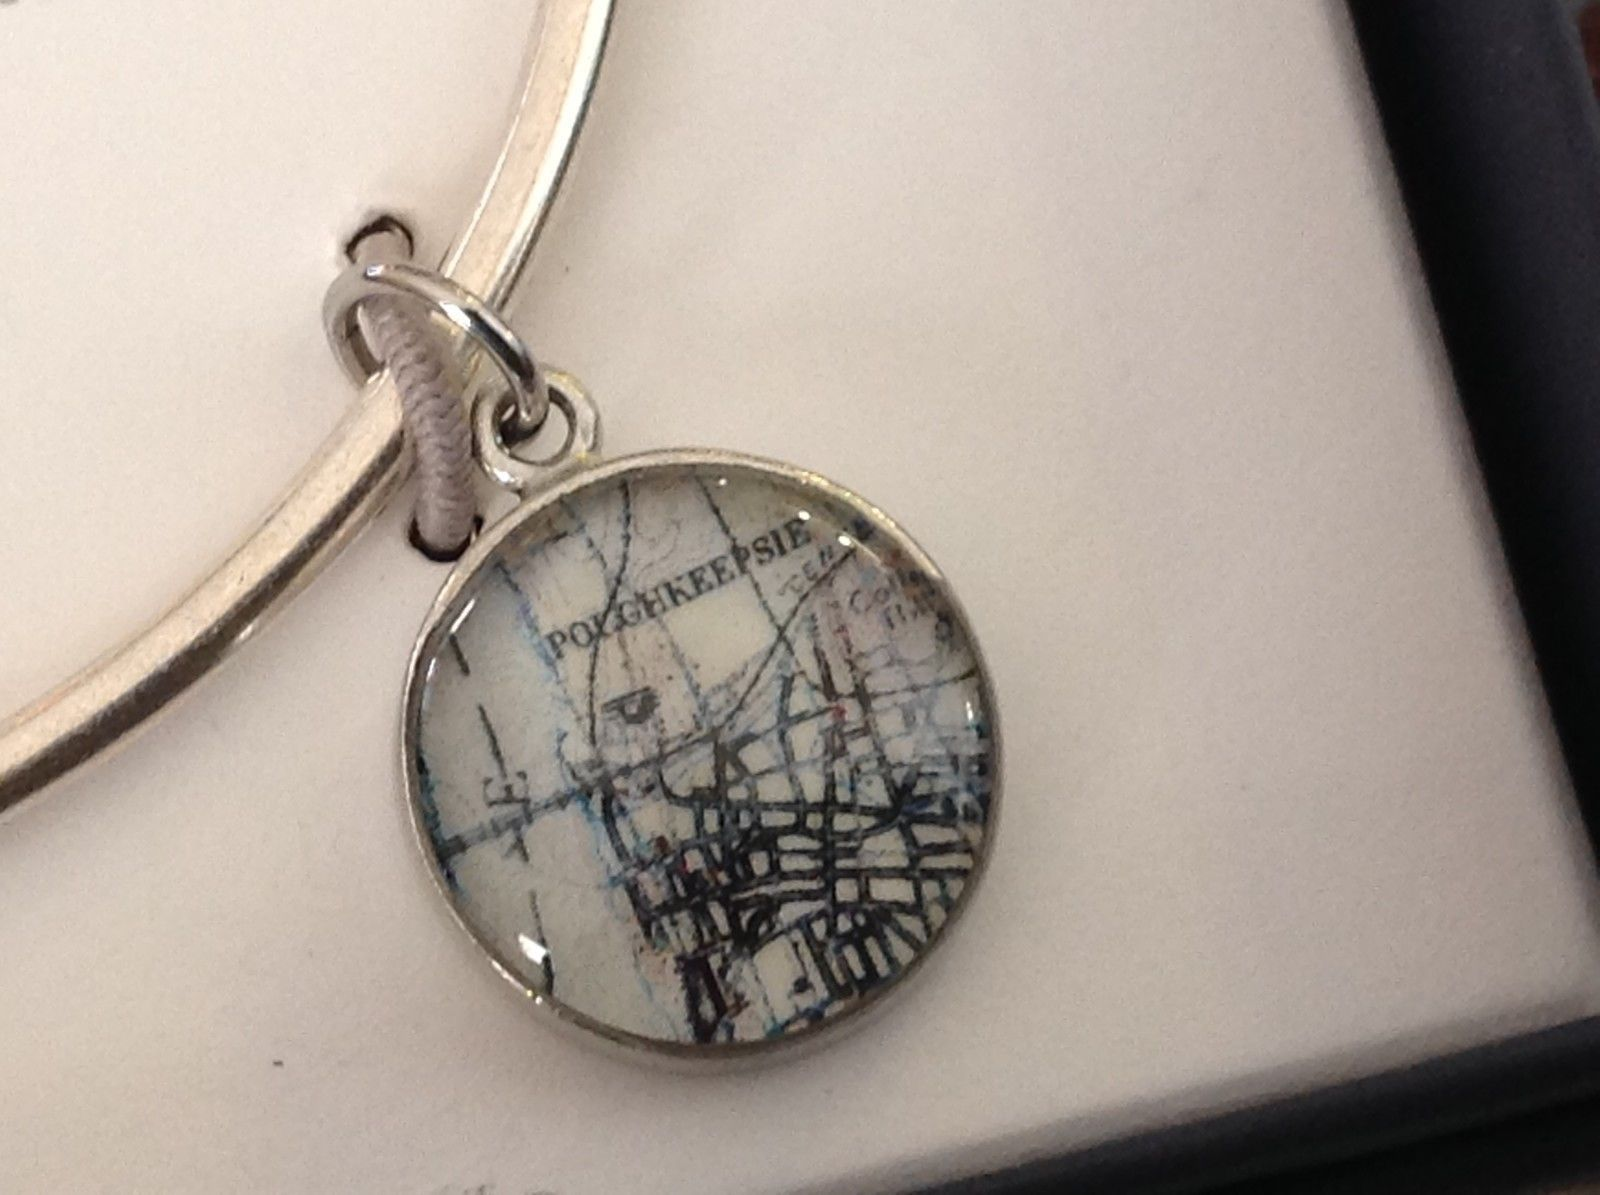 New Pewter hand made bangle bracelet Poughkeepsie vintage map round charm